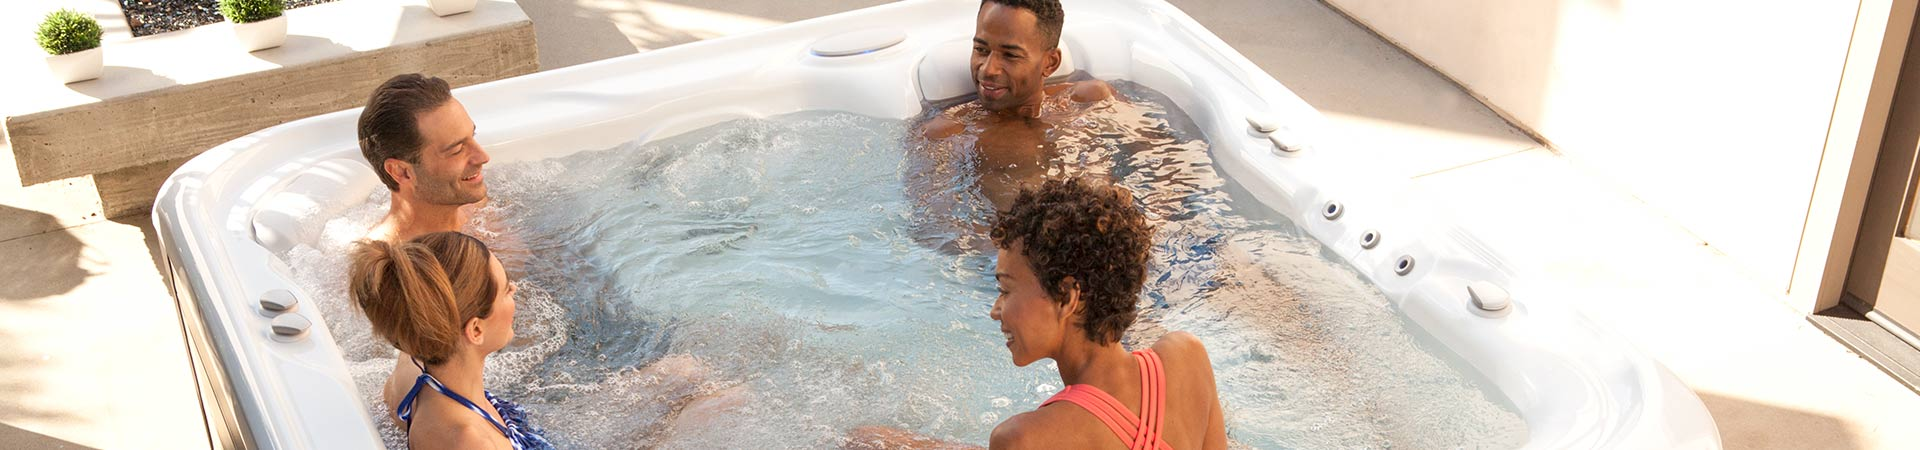 Portable Spa Dealer Shares Tips for Stress Awareness Month, Hot Tub Sale St. Louis